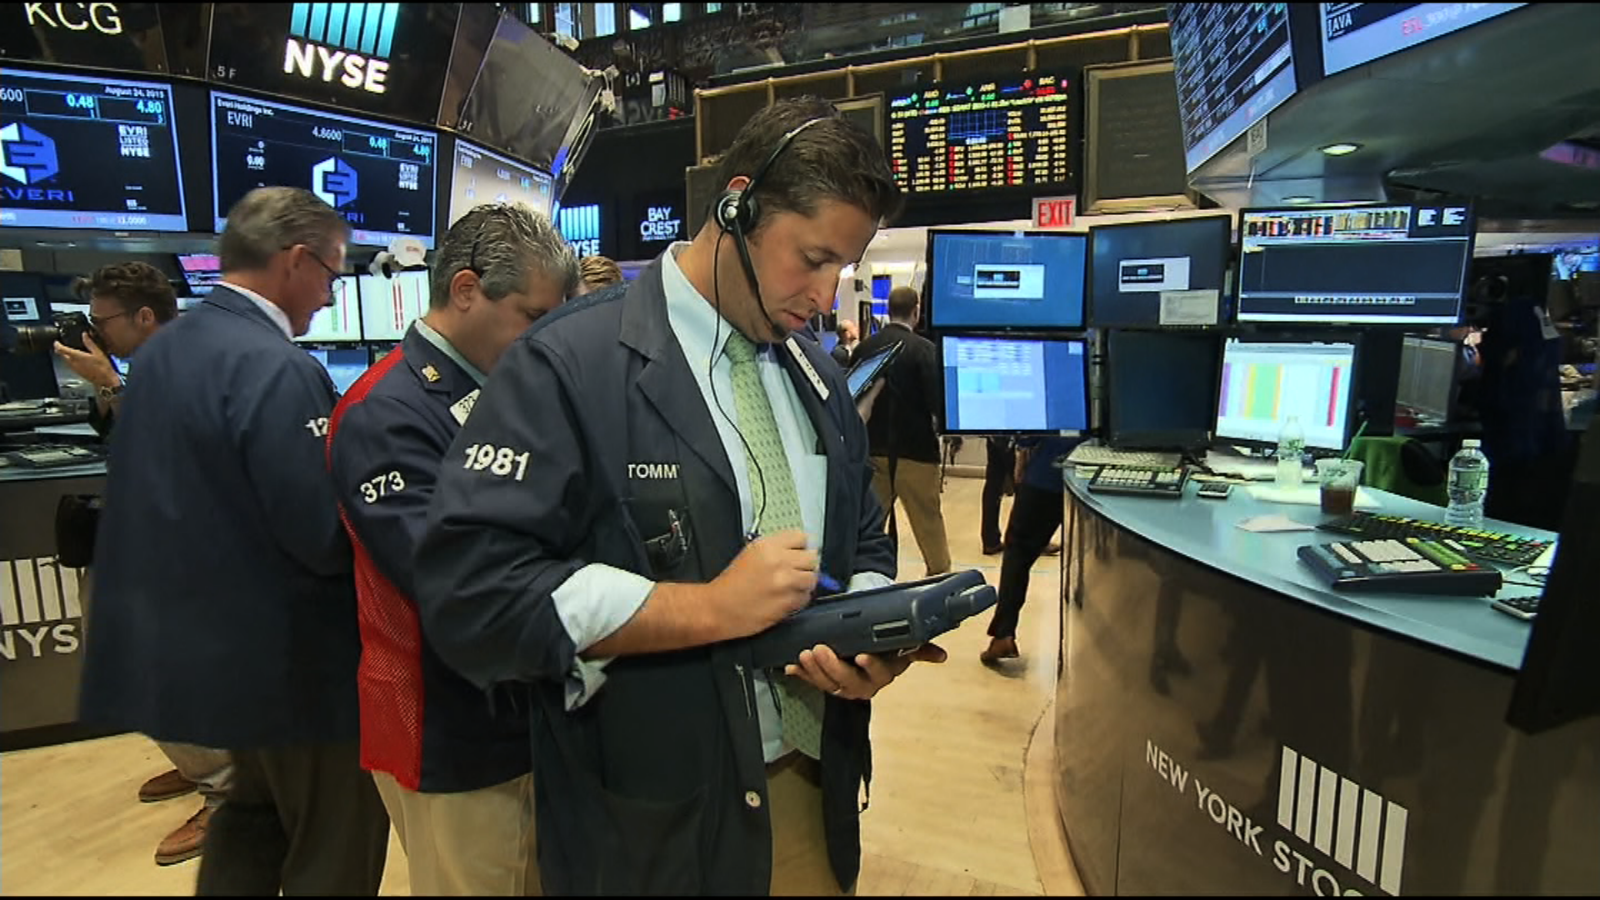 Are there enough stock market safeguards? - CNN Video